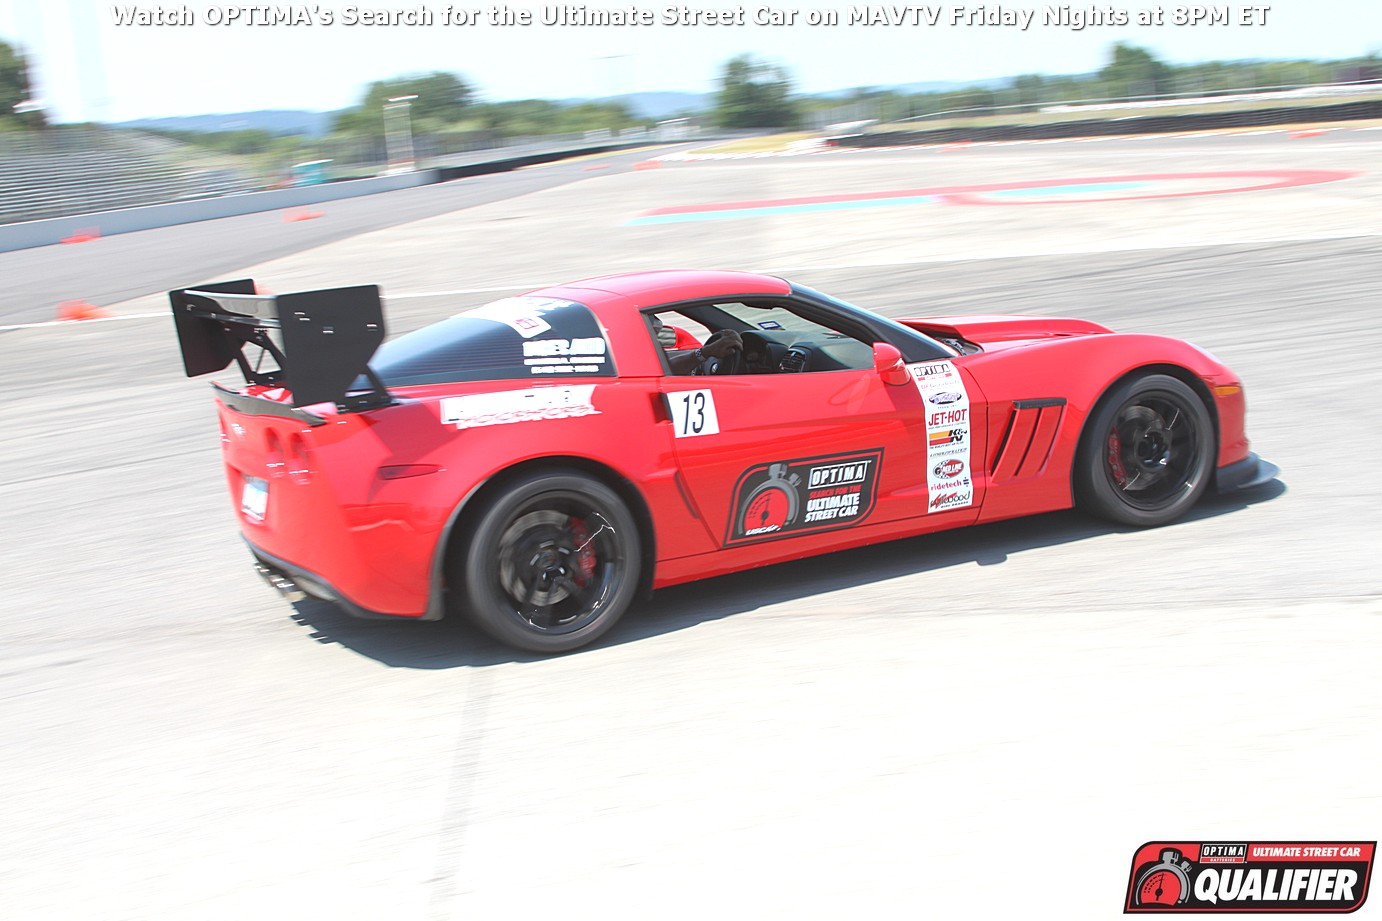 2014 OUSCI Preview- Duke Langley's 2012 Chevrolet Corvette